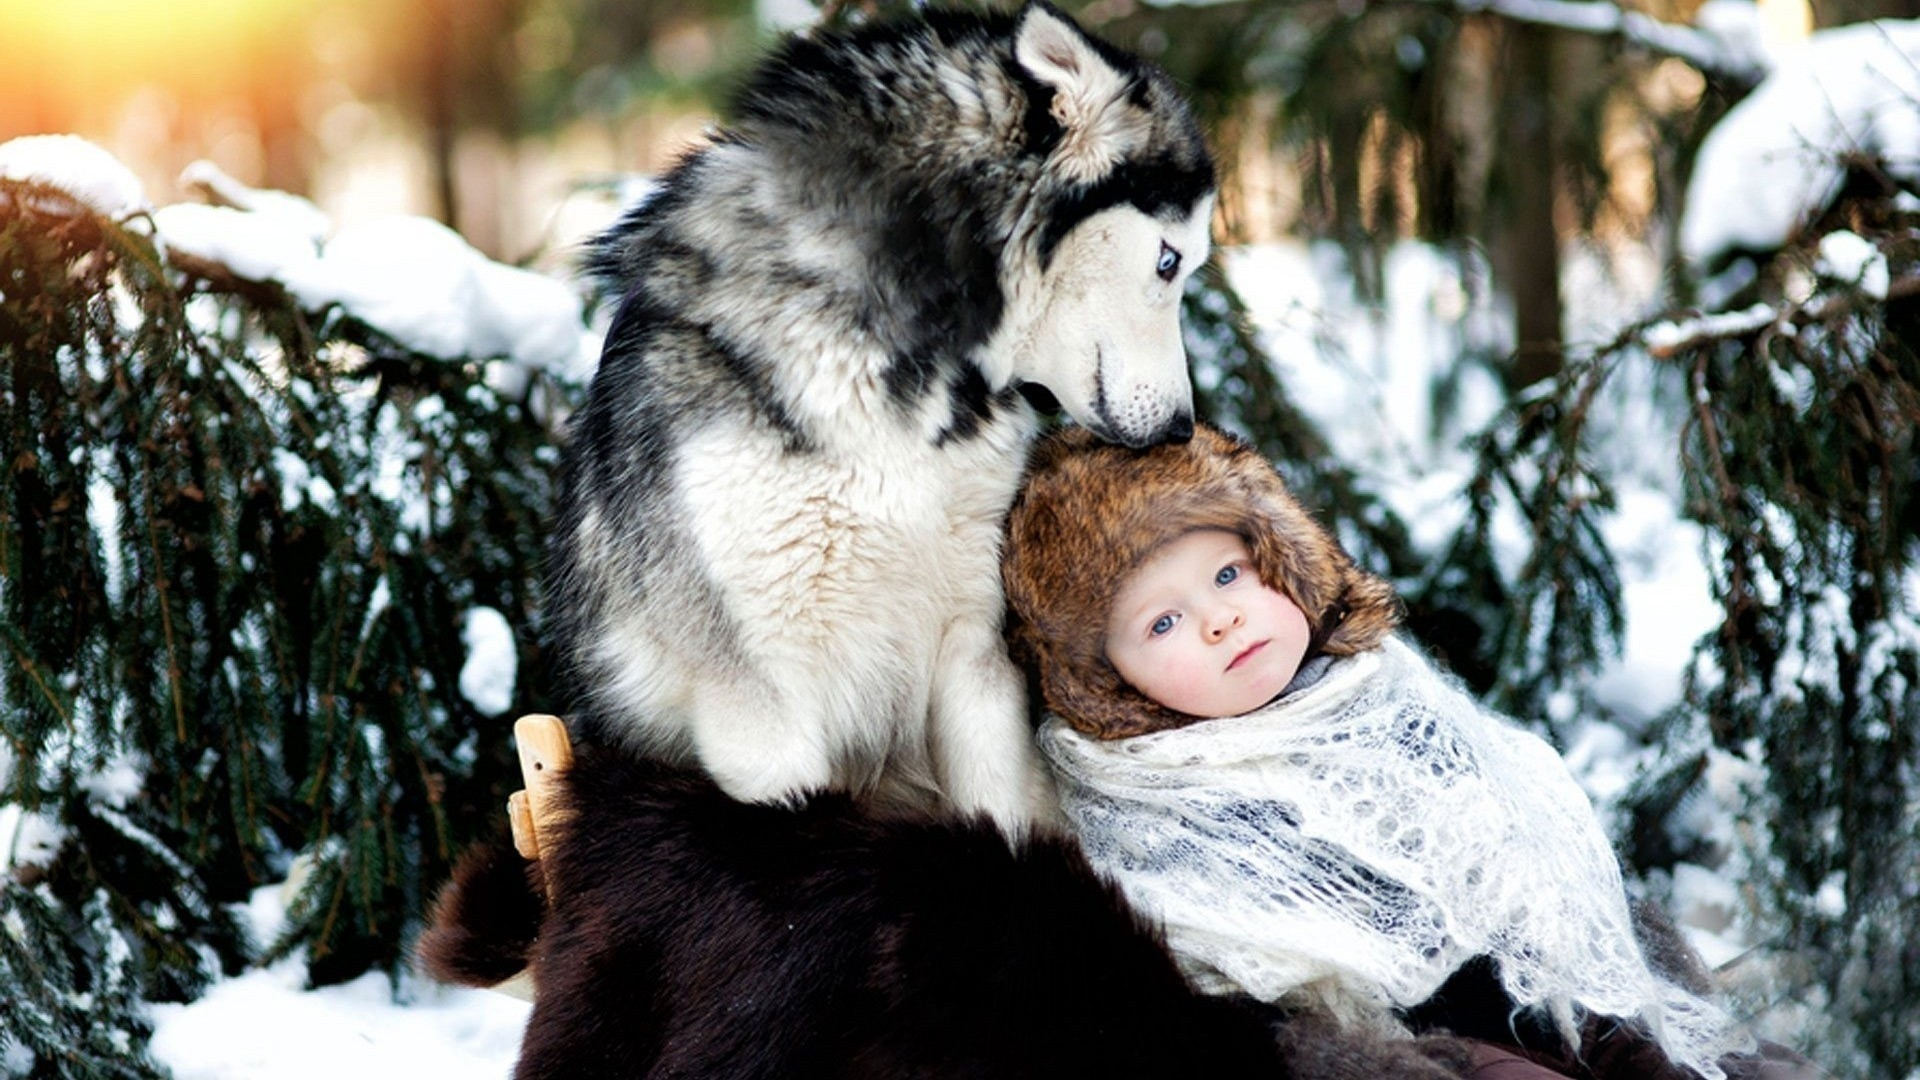 Preview wallpaper dog, husky, baby, care, forest, snow, winter 1920×1080